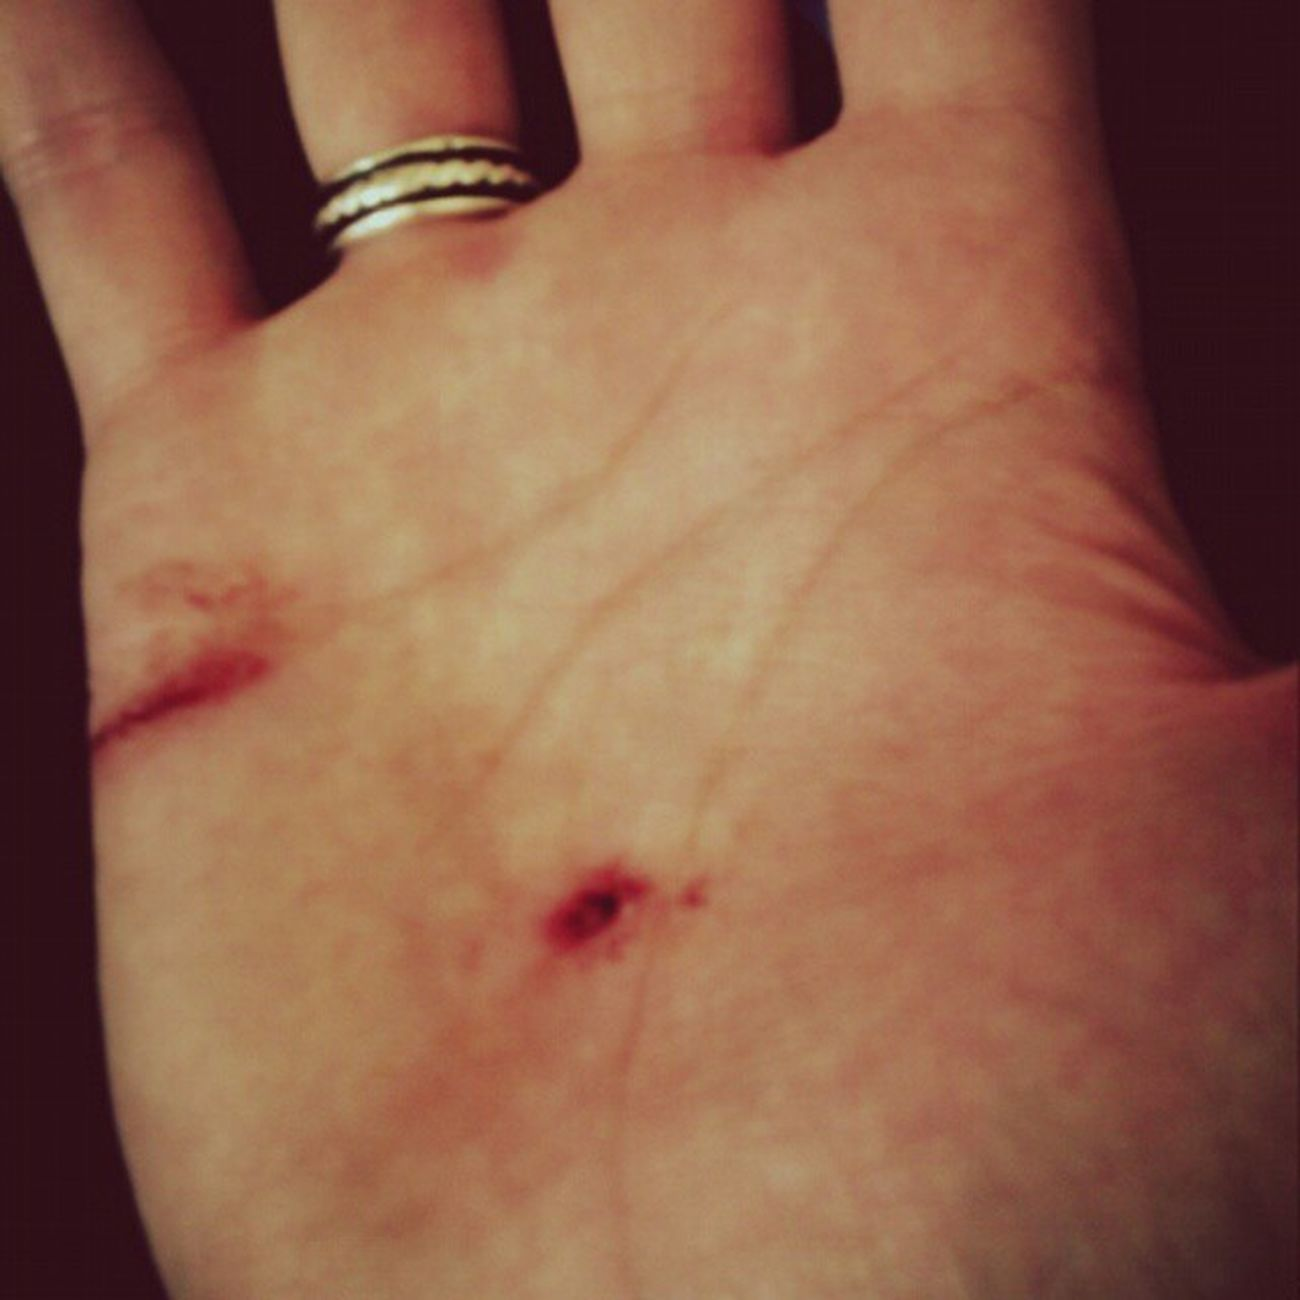 Airsoft is rough, missed a 10cm nail on my fall but still look like jesus hand. Airsoft Airsoftinjuries Nopainnogain Bestgameever